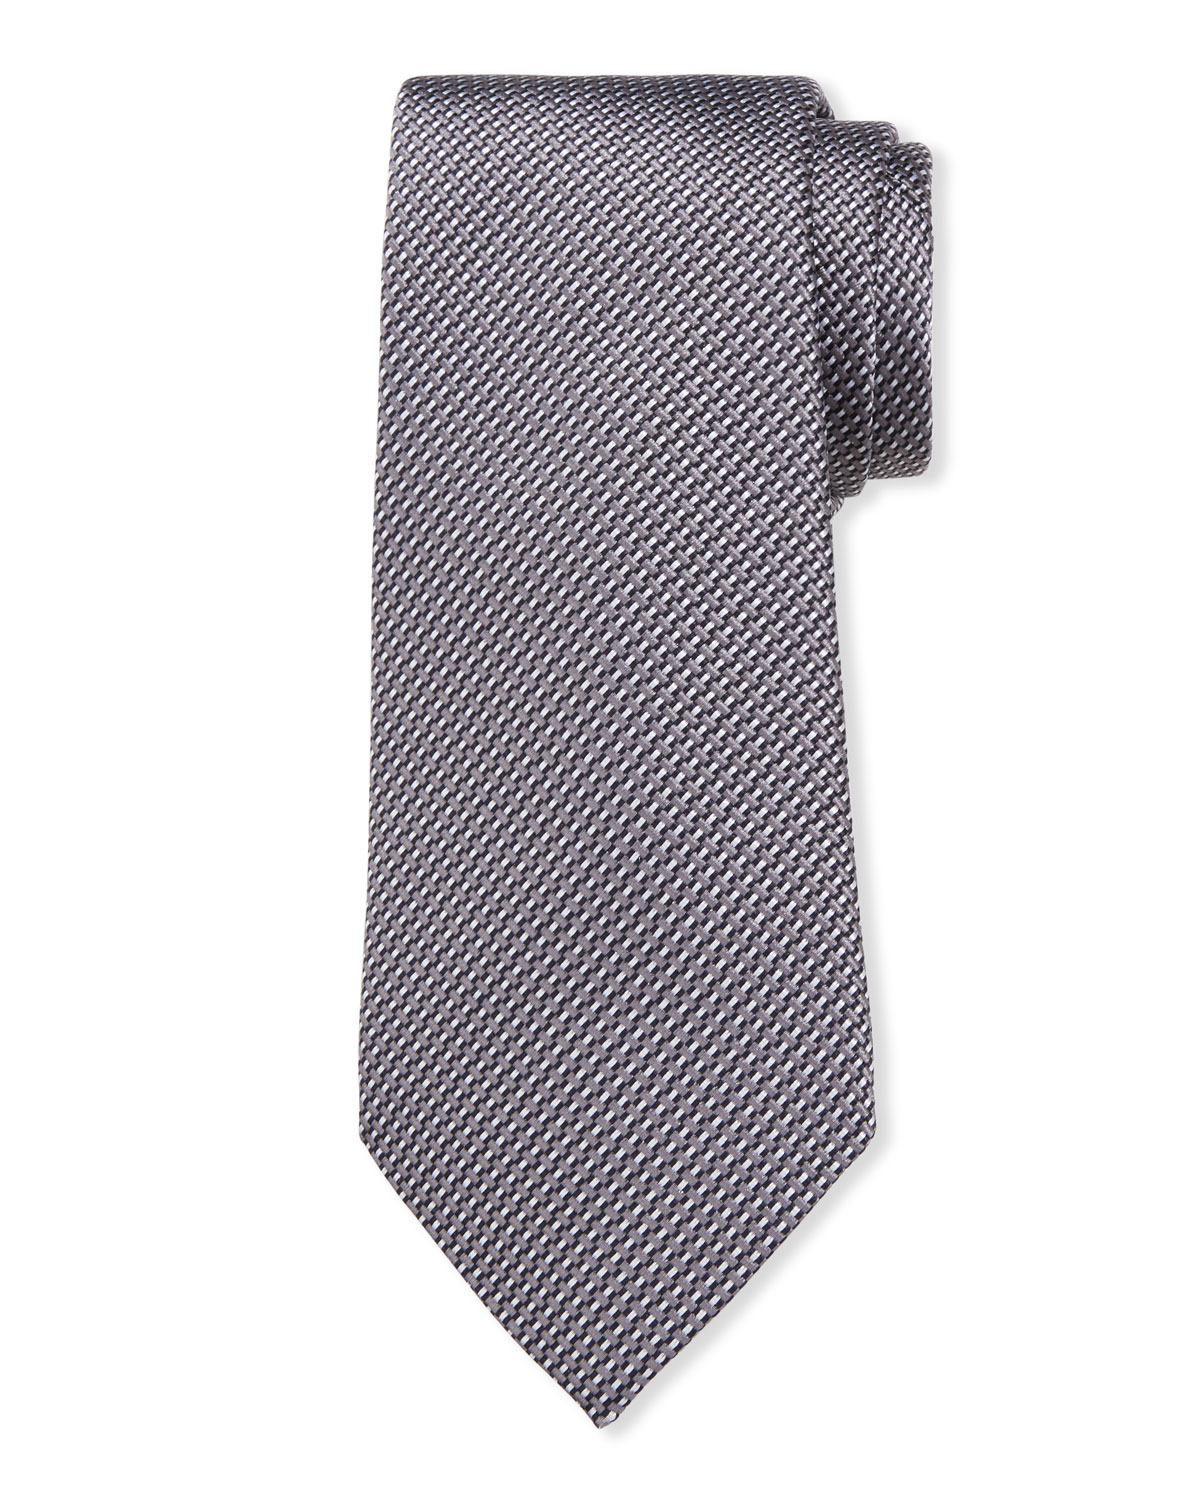 Giorgio Armani Tie MEN'S LINEAR JACQUARD SILK-COTTON TIE